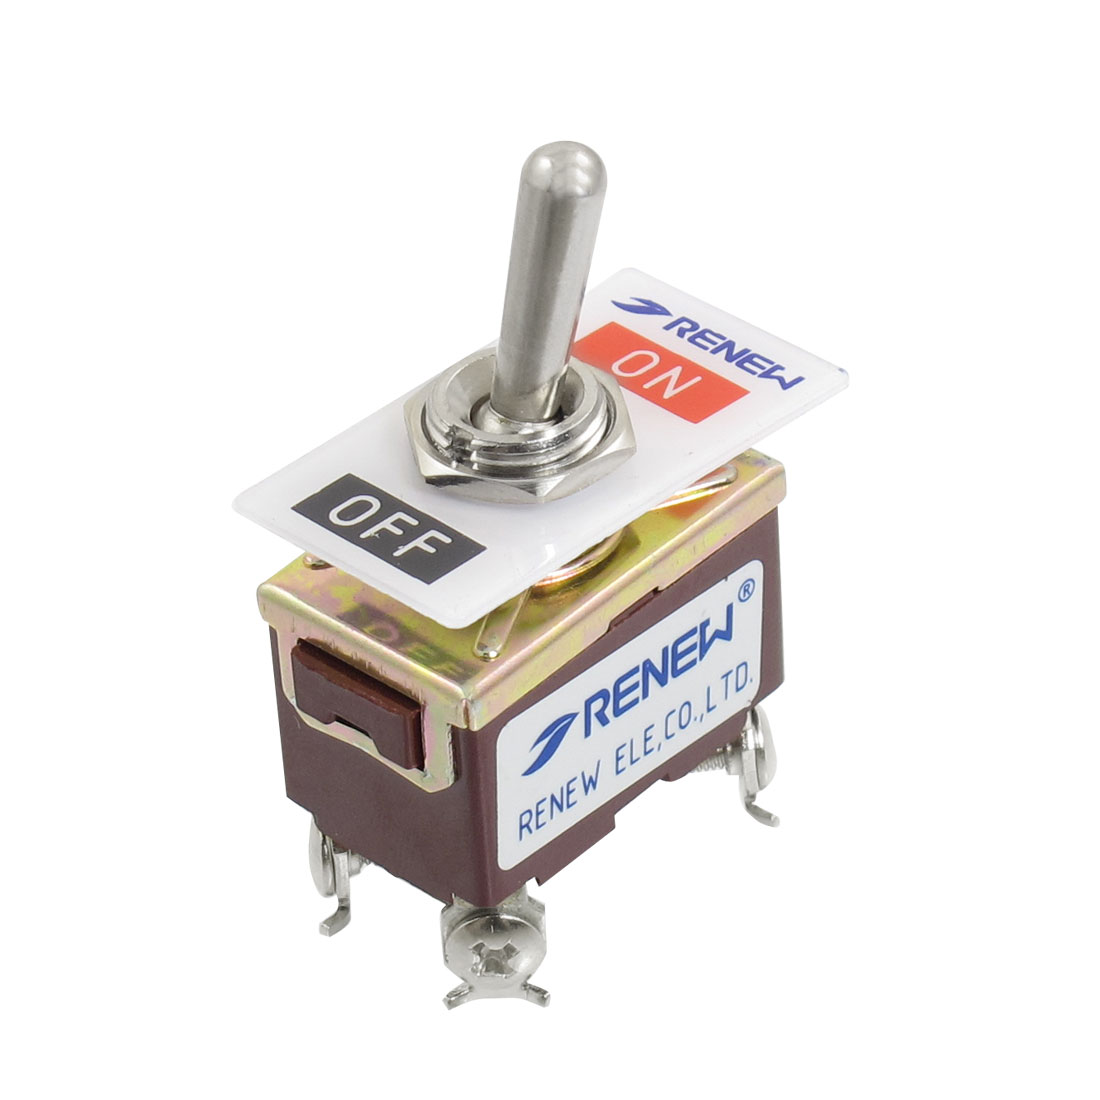 AC 250V/15A 125V/20A 4 Screw Terminals On-Off 2 Position DPST Toggle Switch